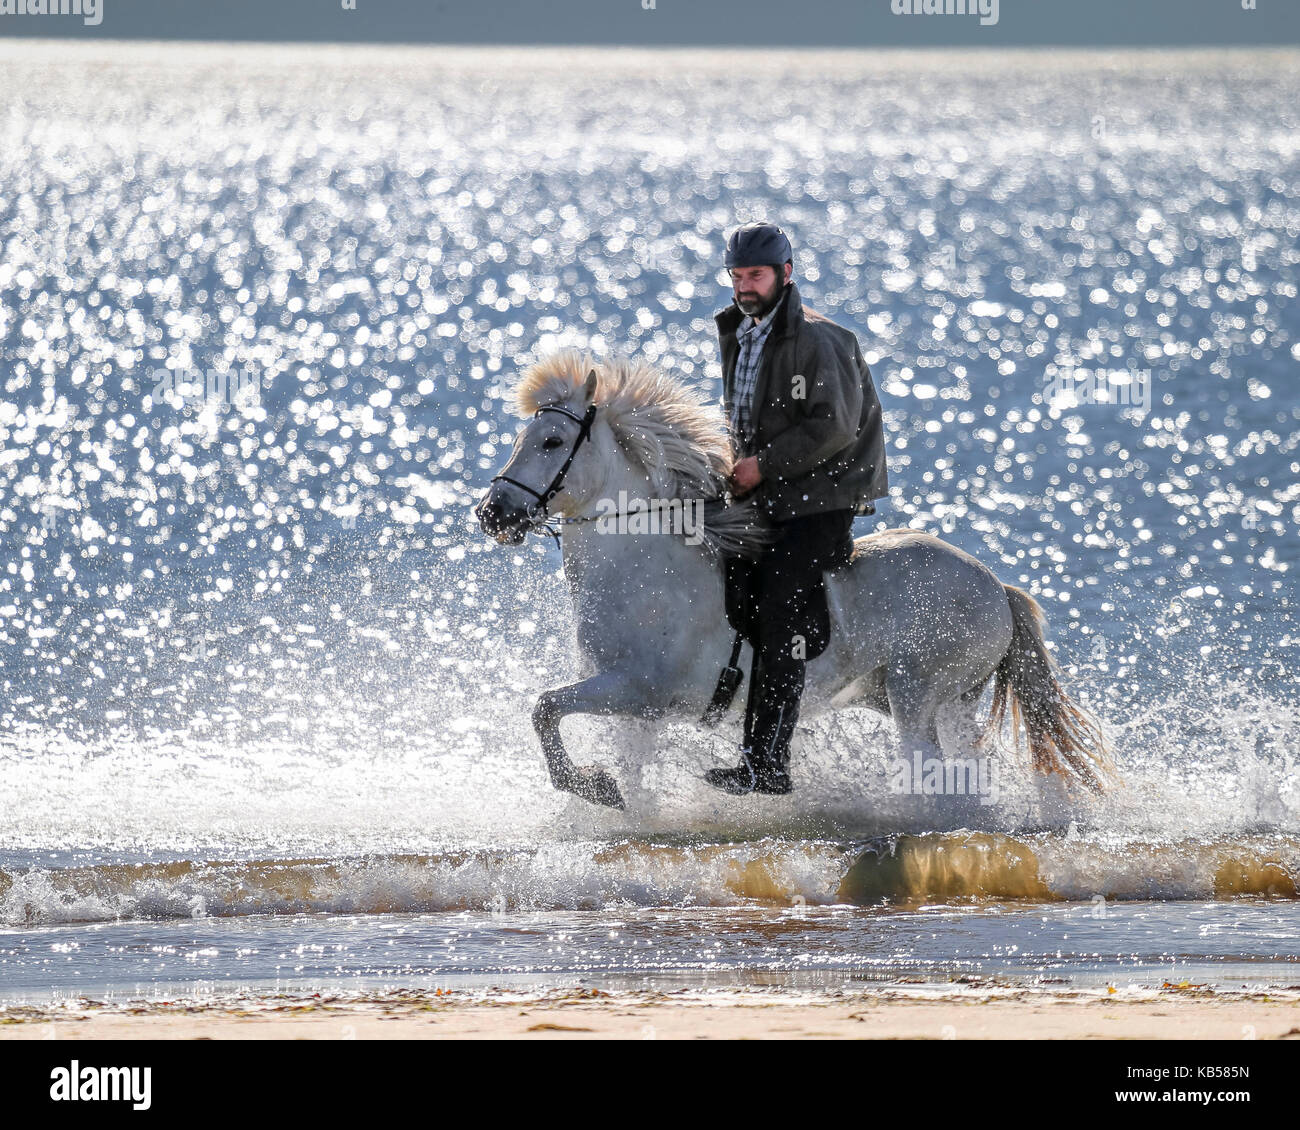 Horseback riding on Longufjordur Beach, Snaefellsnes Peninsula, Iceland - Stock Image